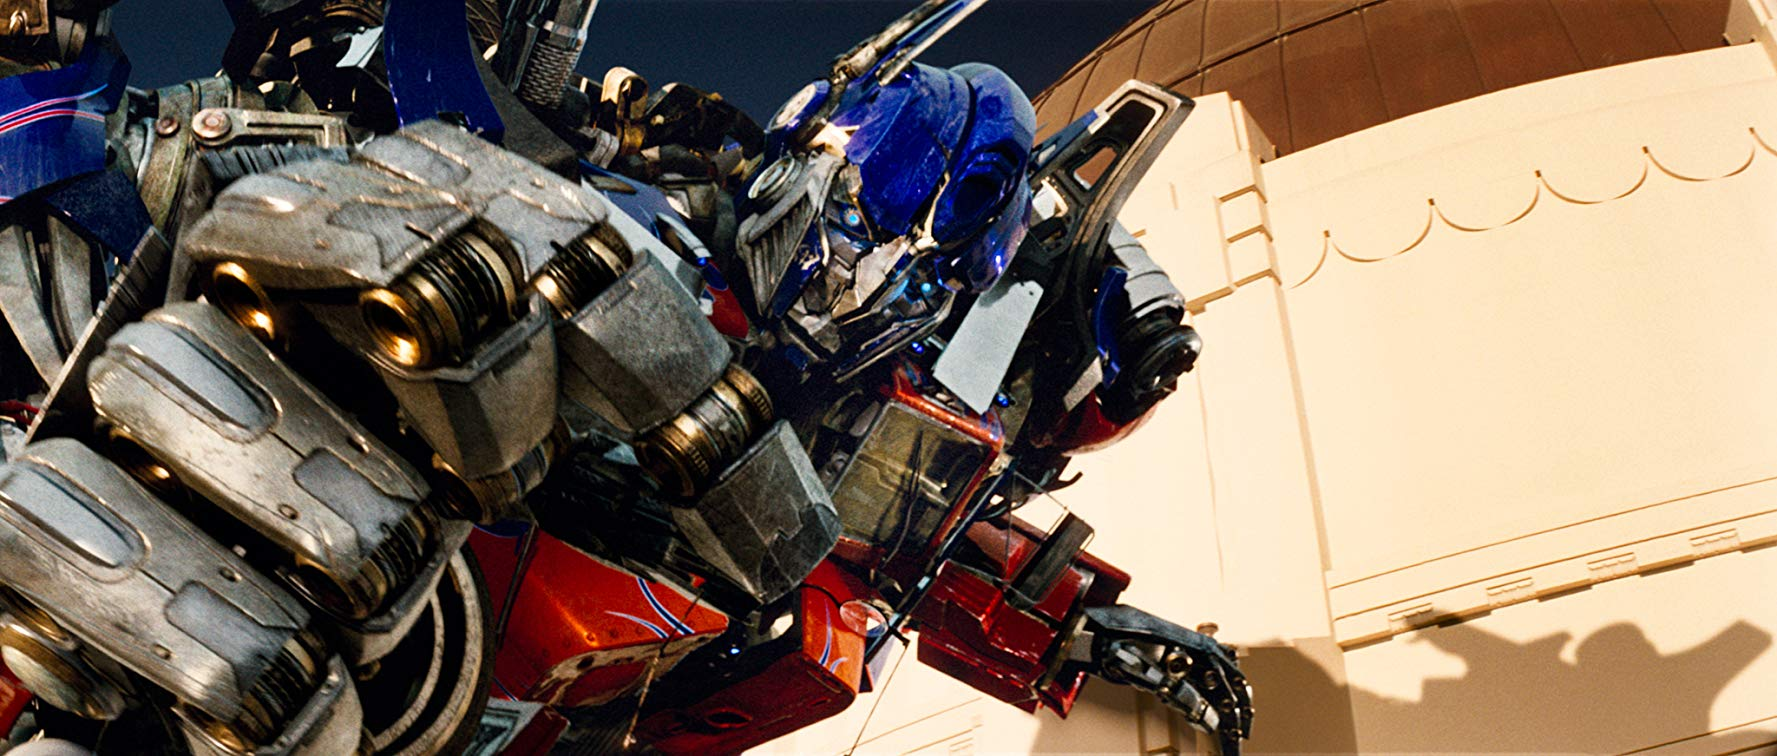 Transformers (2007) Backdrop